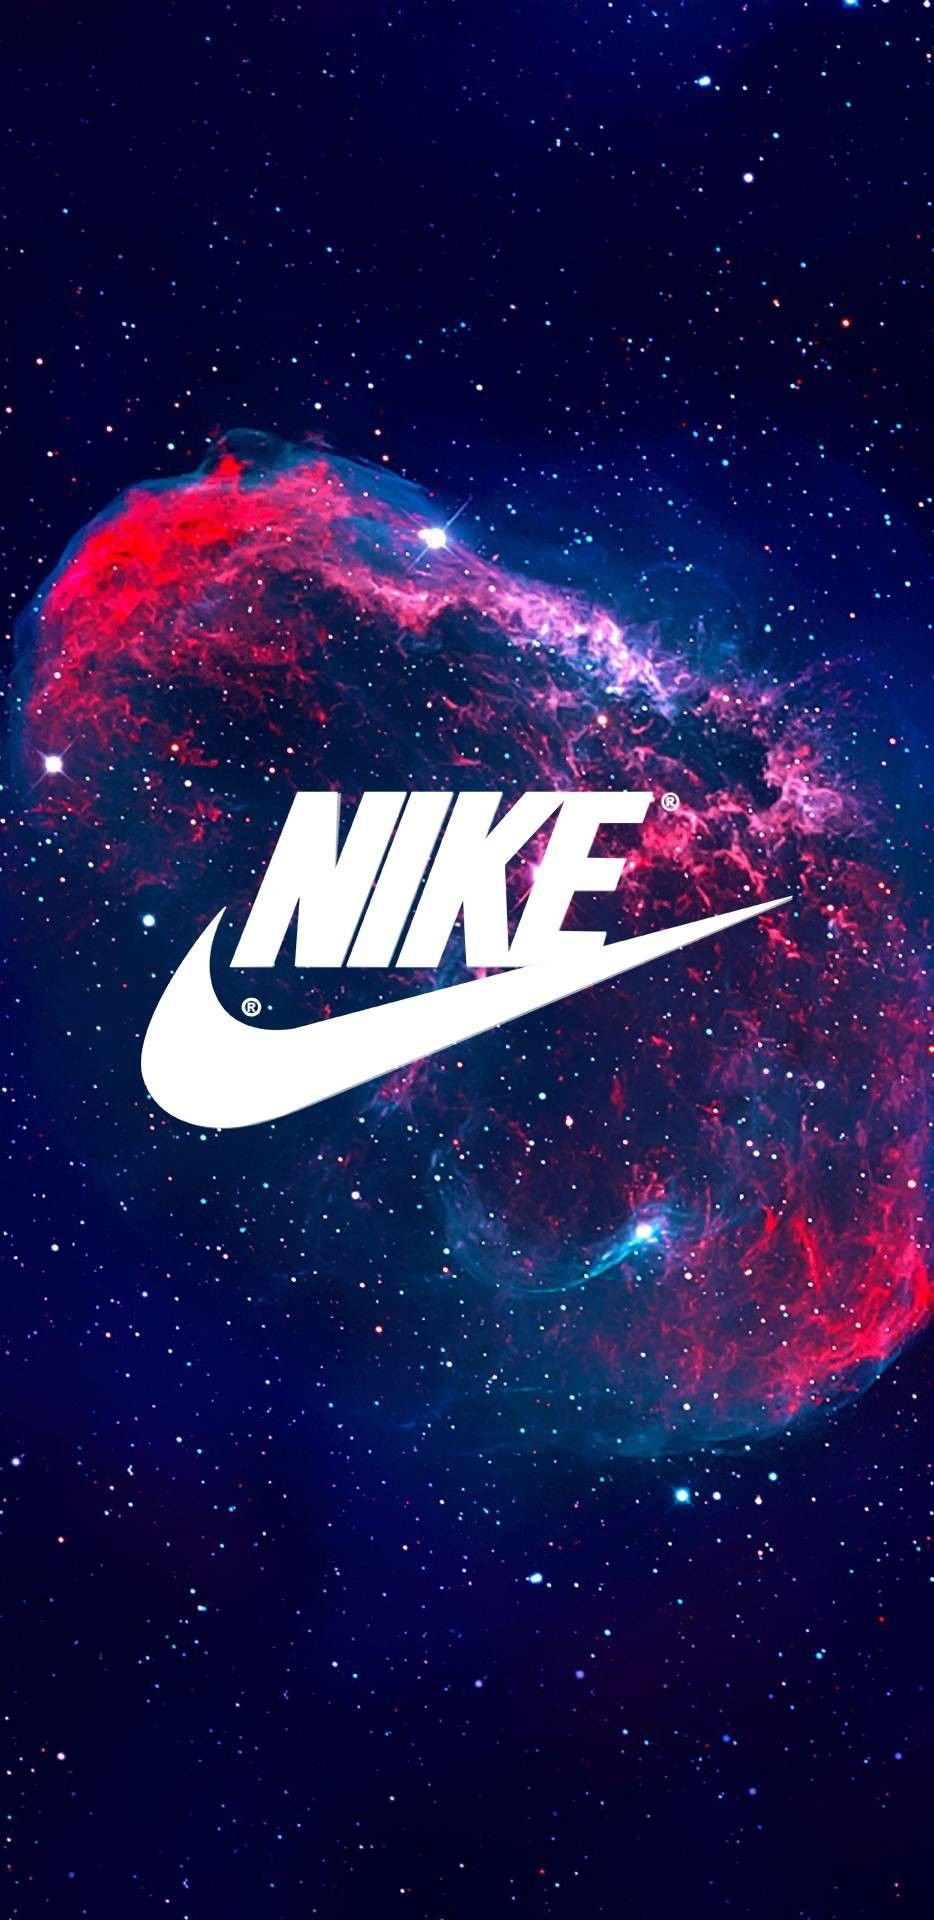 Pin By Jeremiah Arrington On Wallpapers Nike Logo Wallpapers Nike Wallpaper Nike Wallpaper Iphone